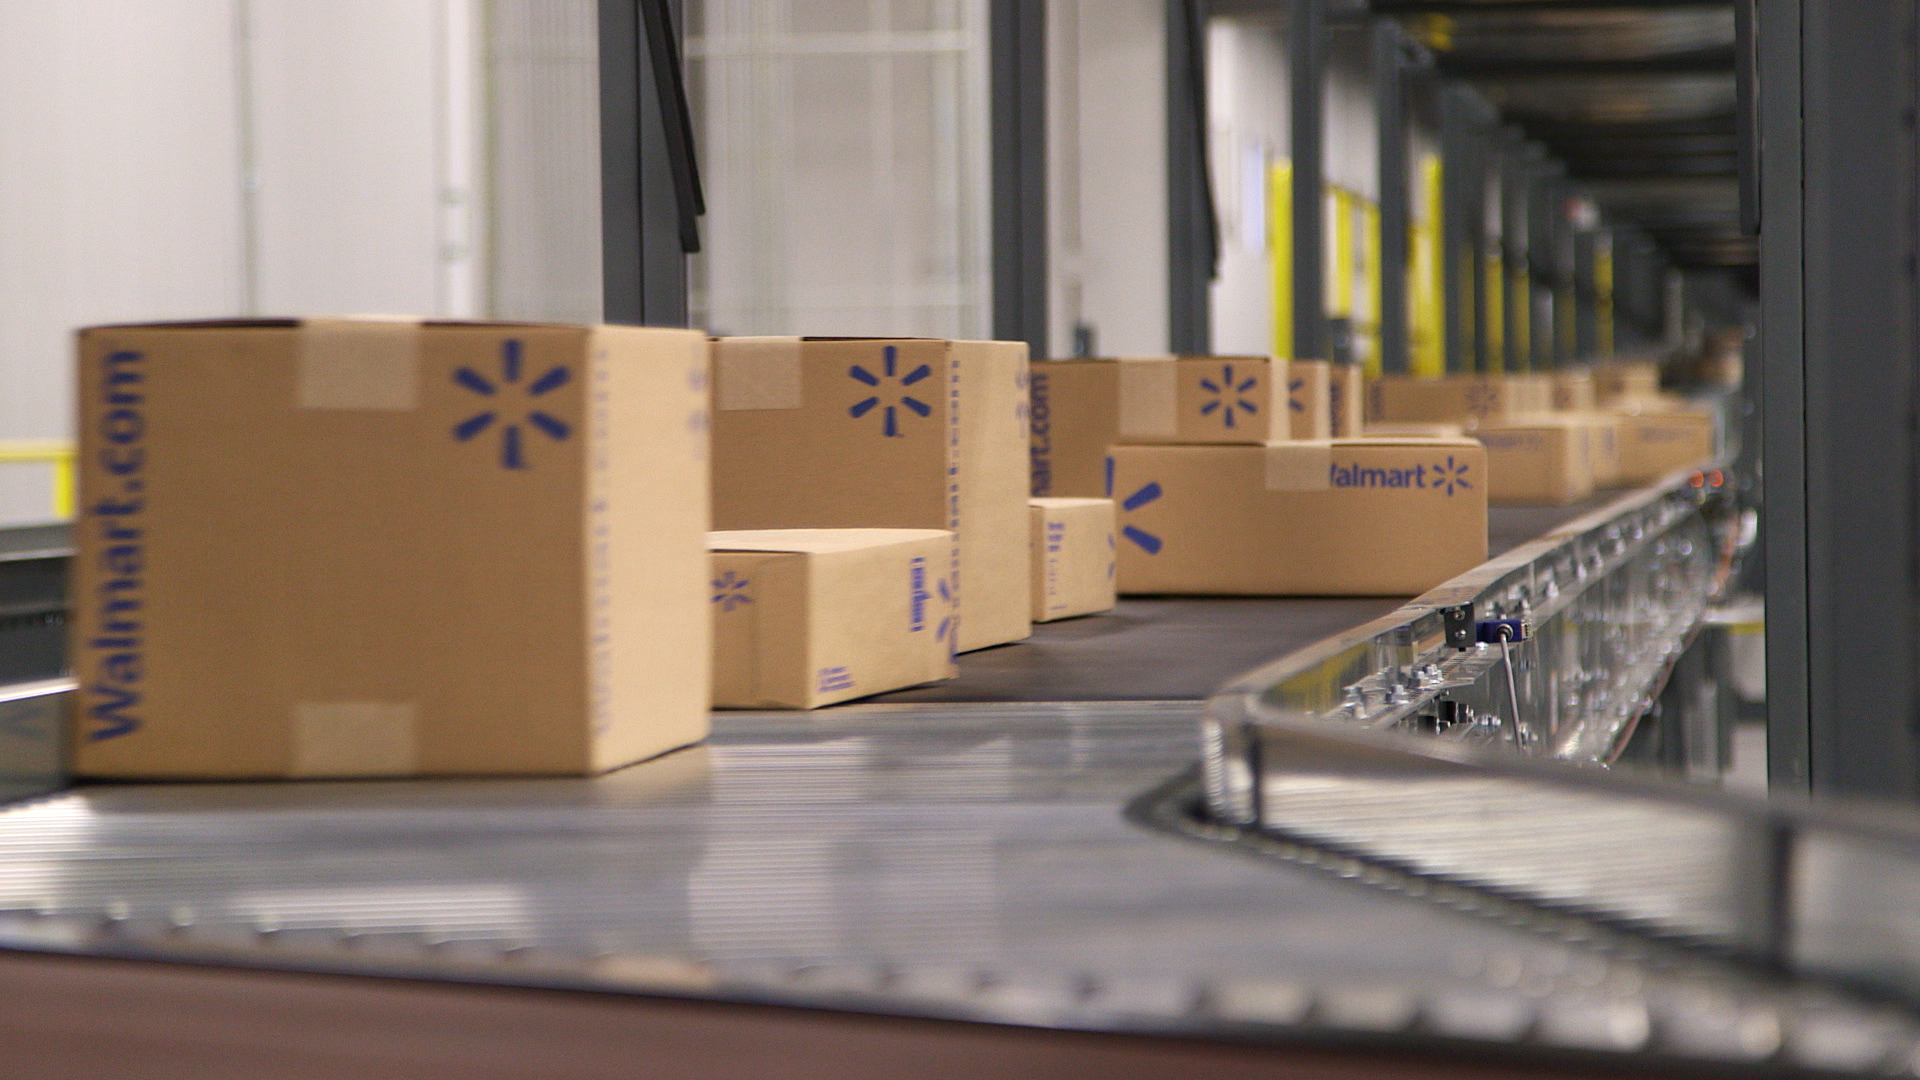 Walmart E Commerce Fulfillment Center Boxes Being Shipped